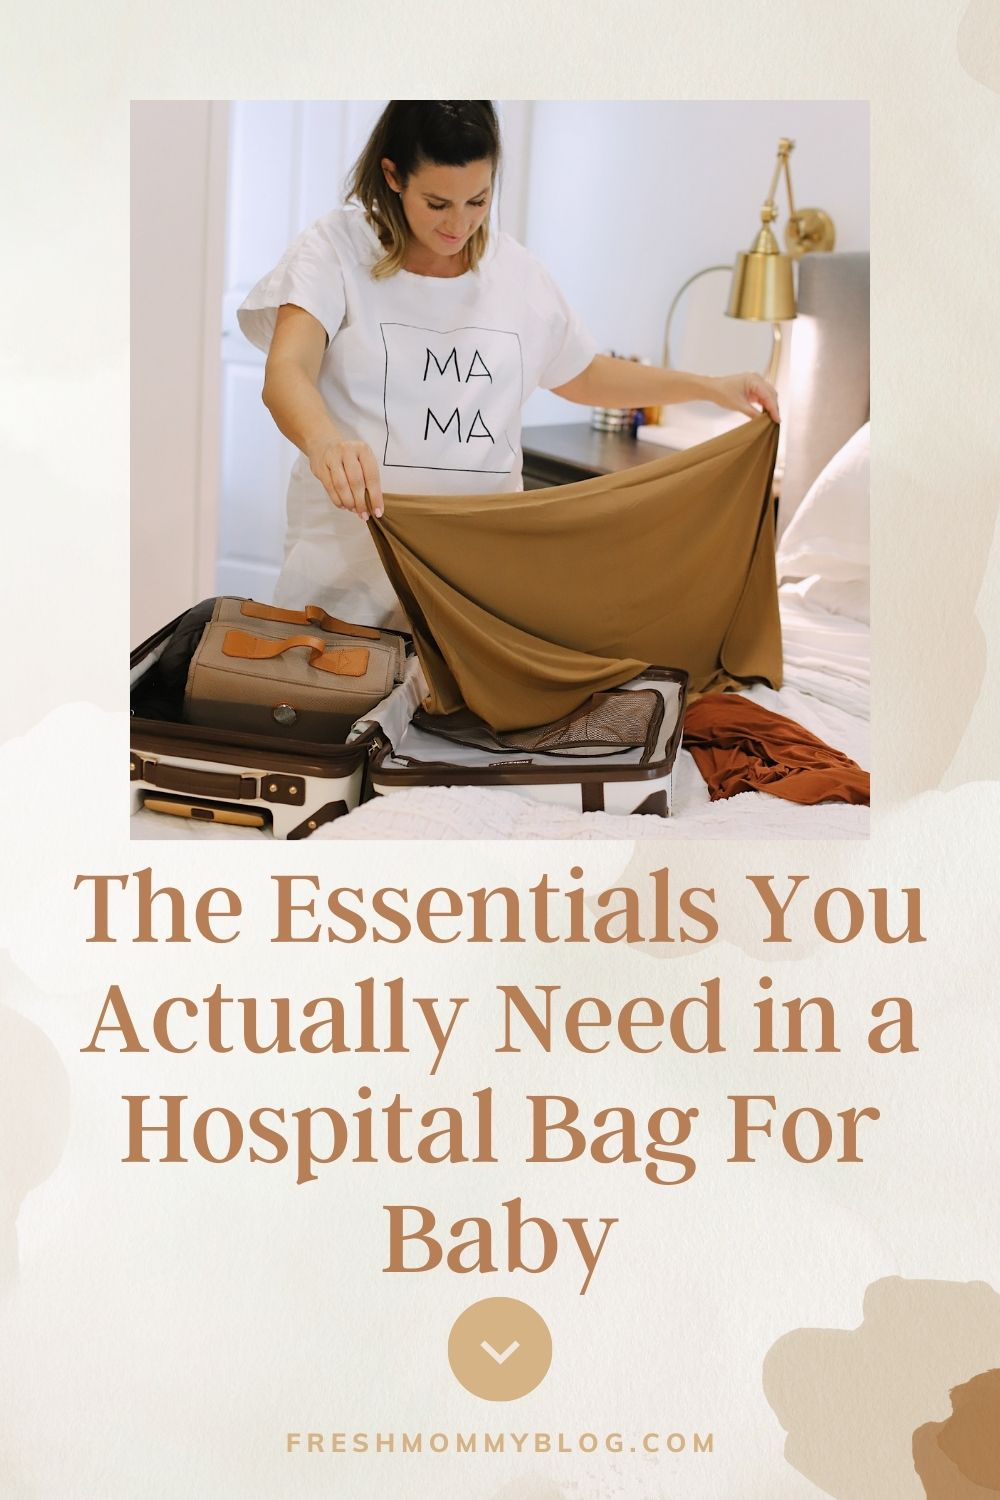 The Essentials You Actually Need in a Hospital Bag For Baby